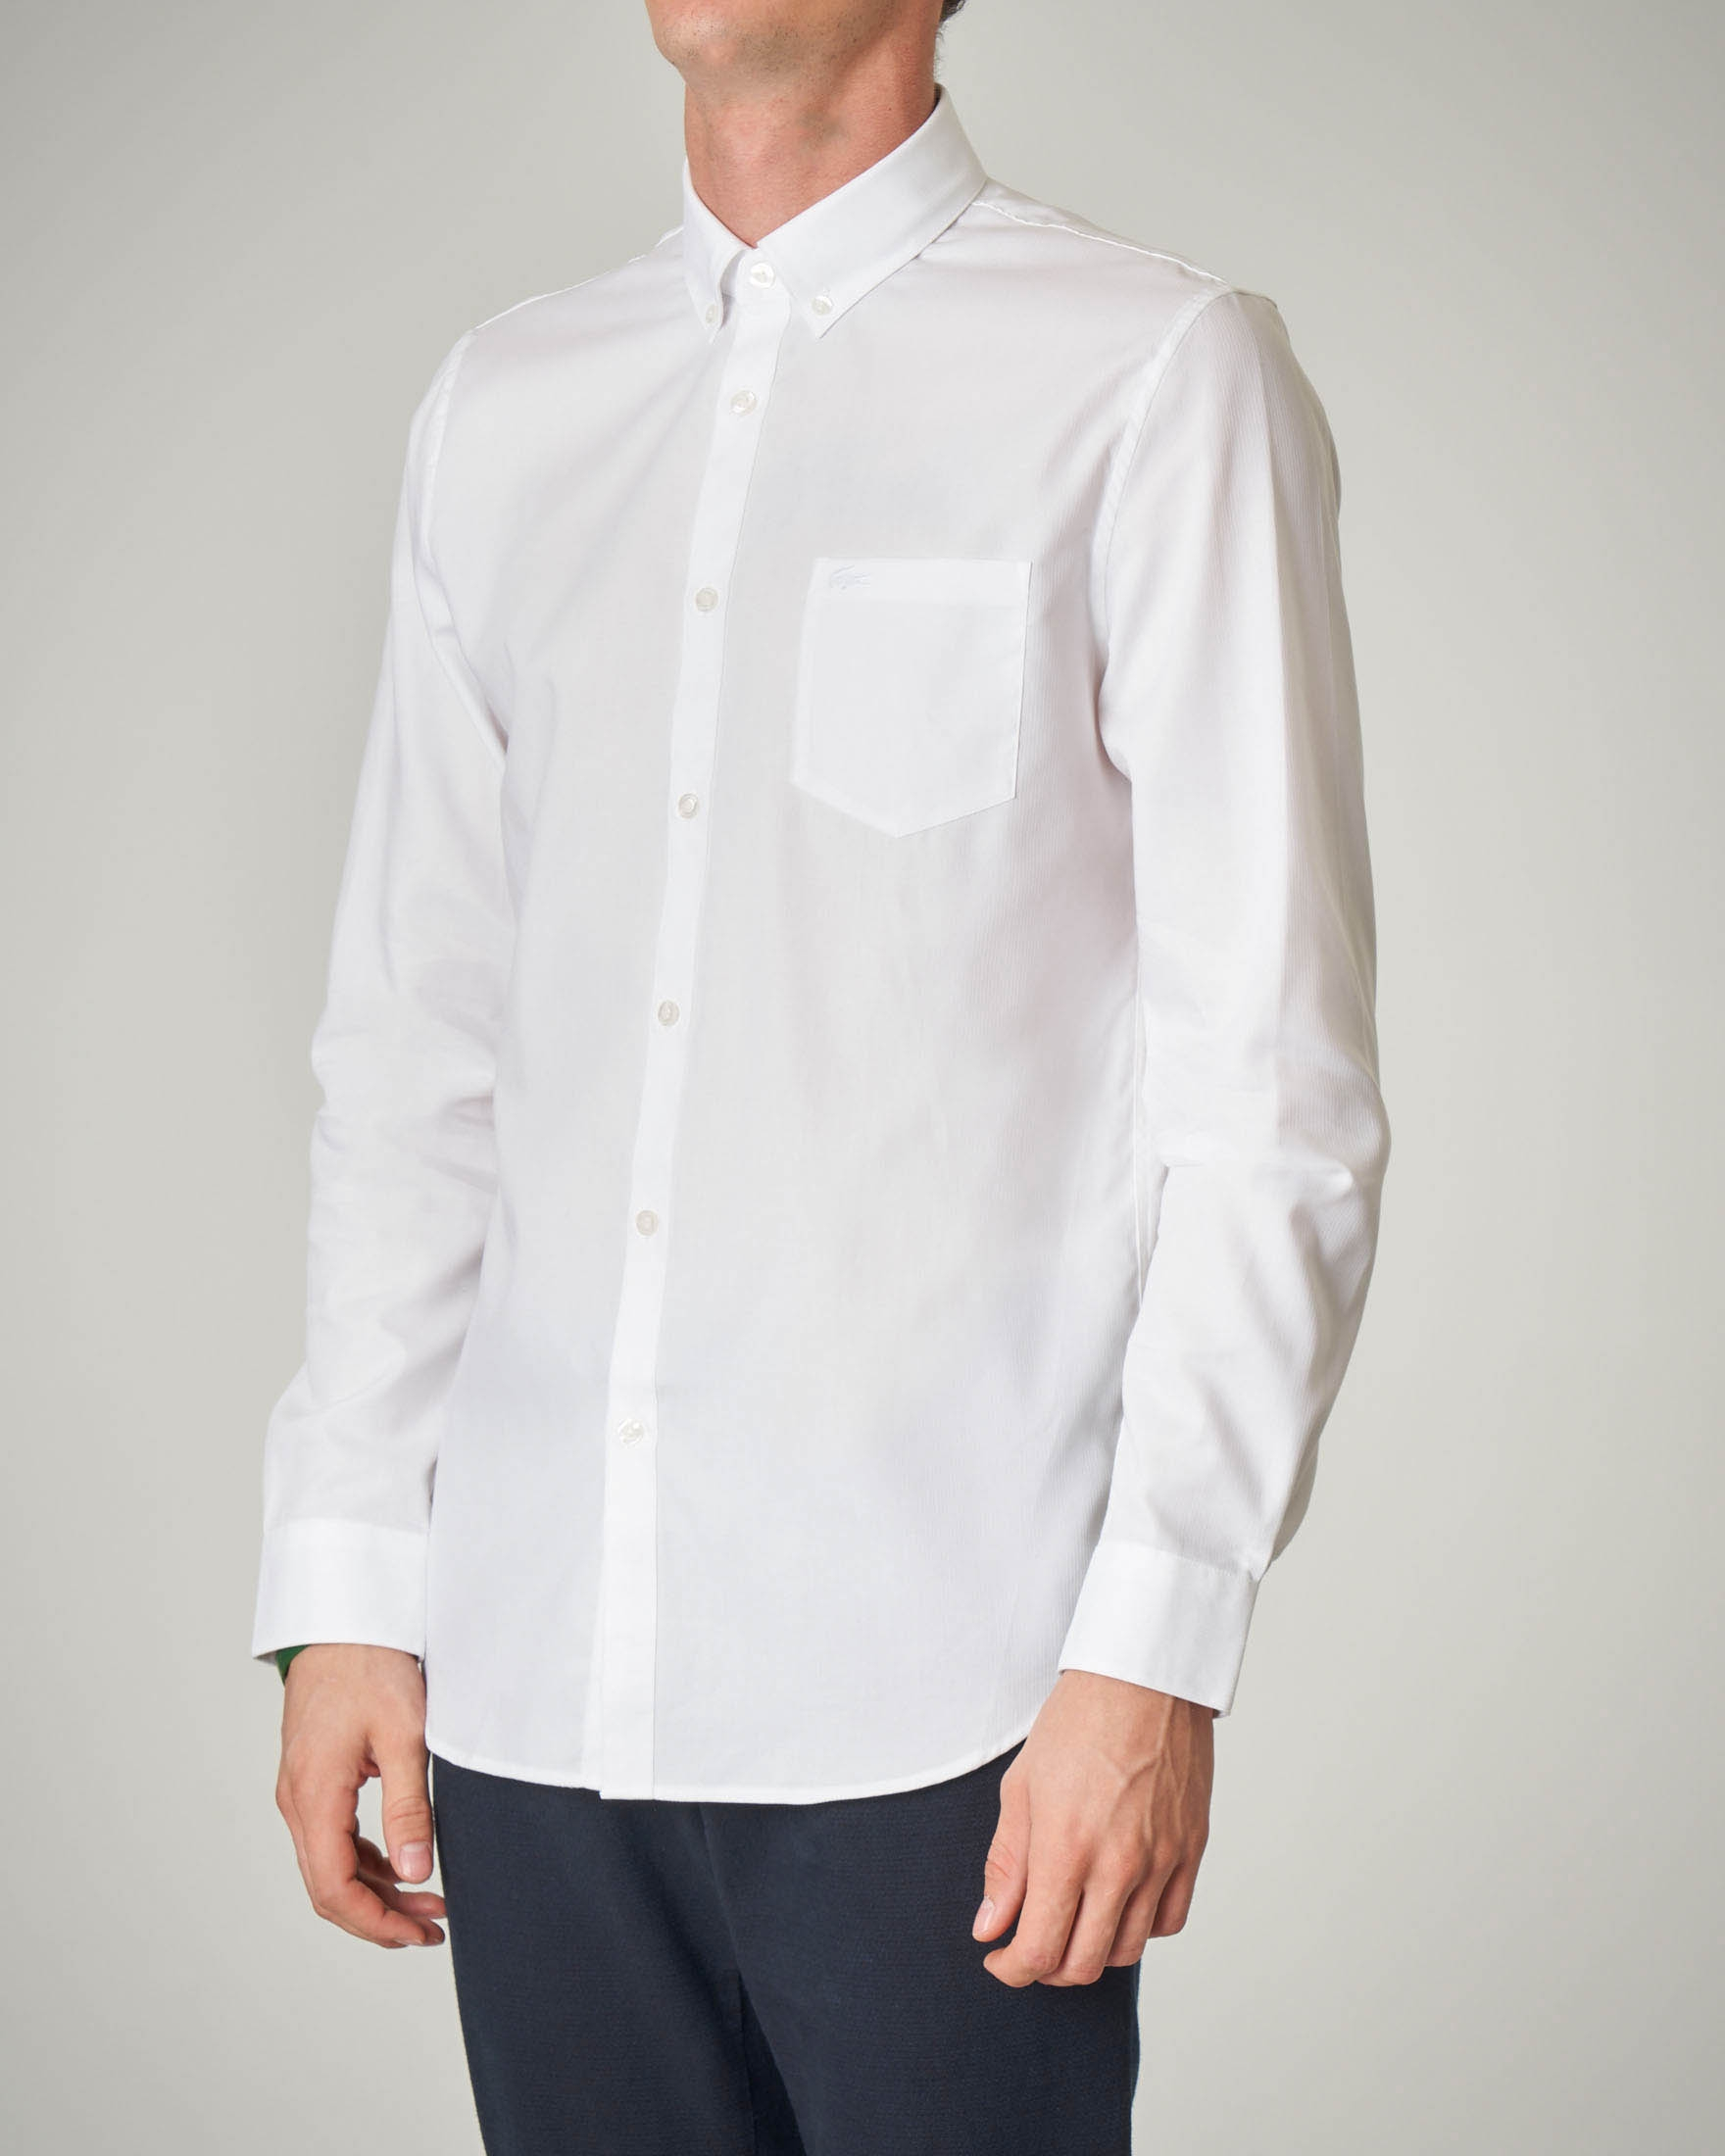 Camicia bianca button down con taschino